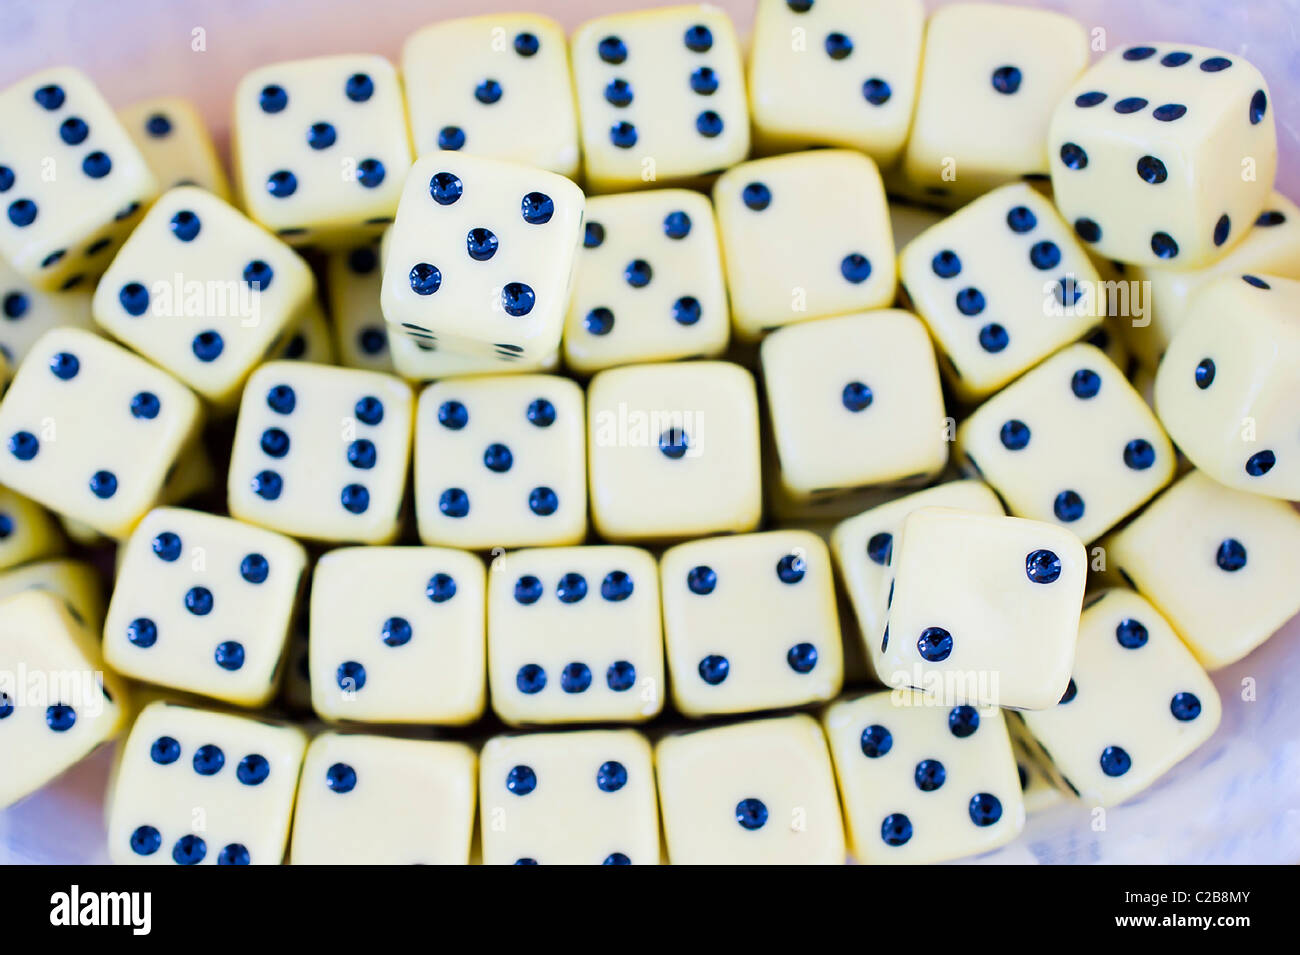 Dices - Stock Image